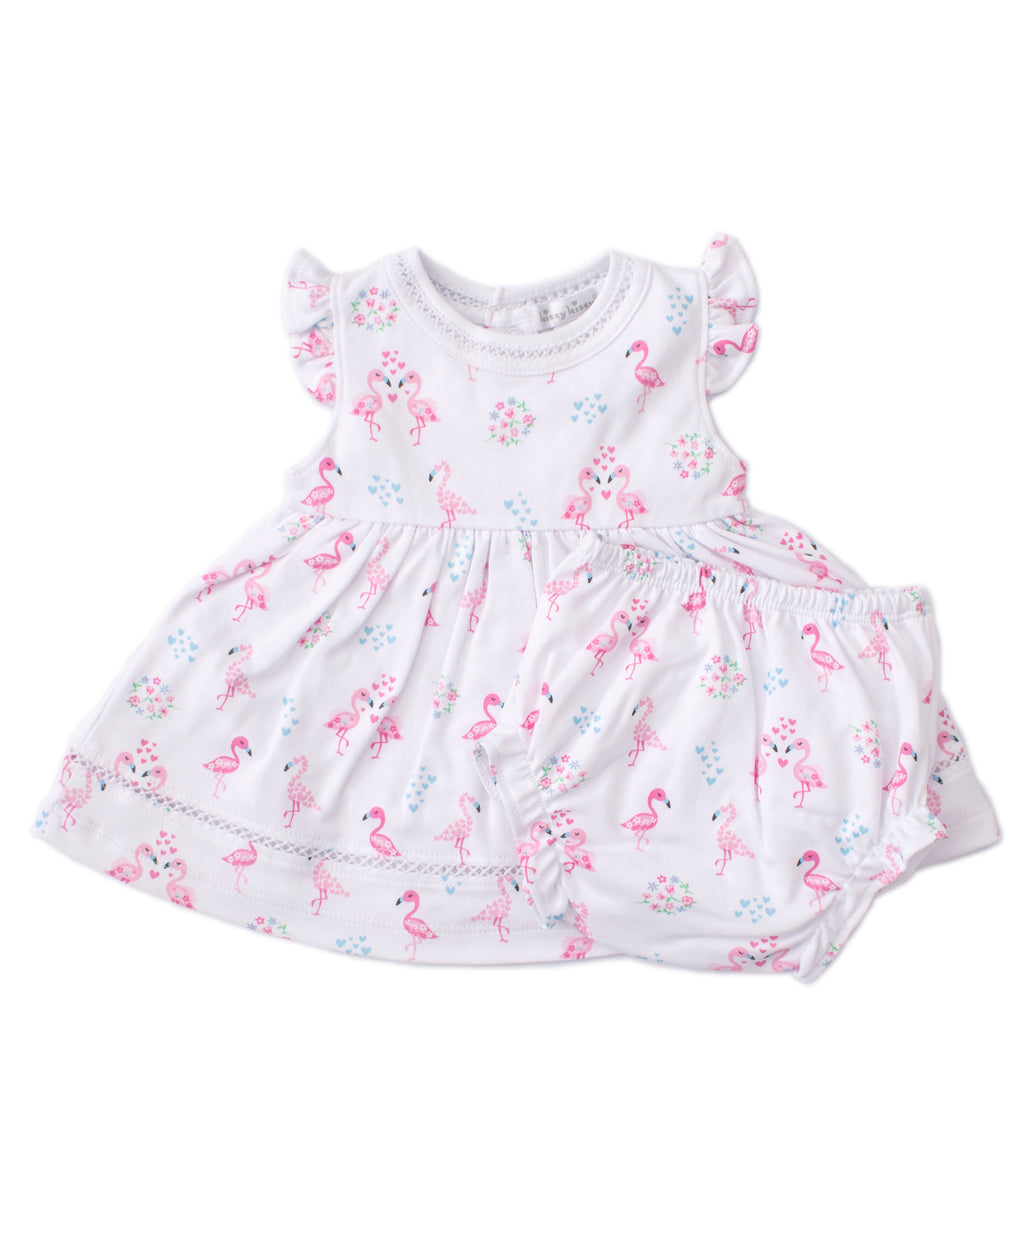 Flowering Flamingos Print Dress Set